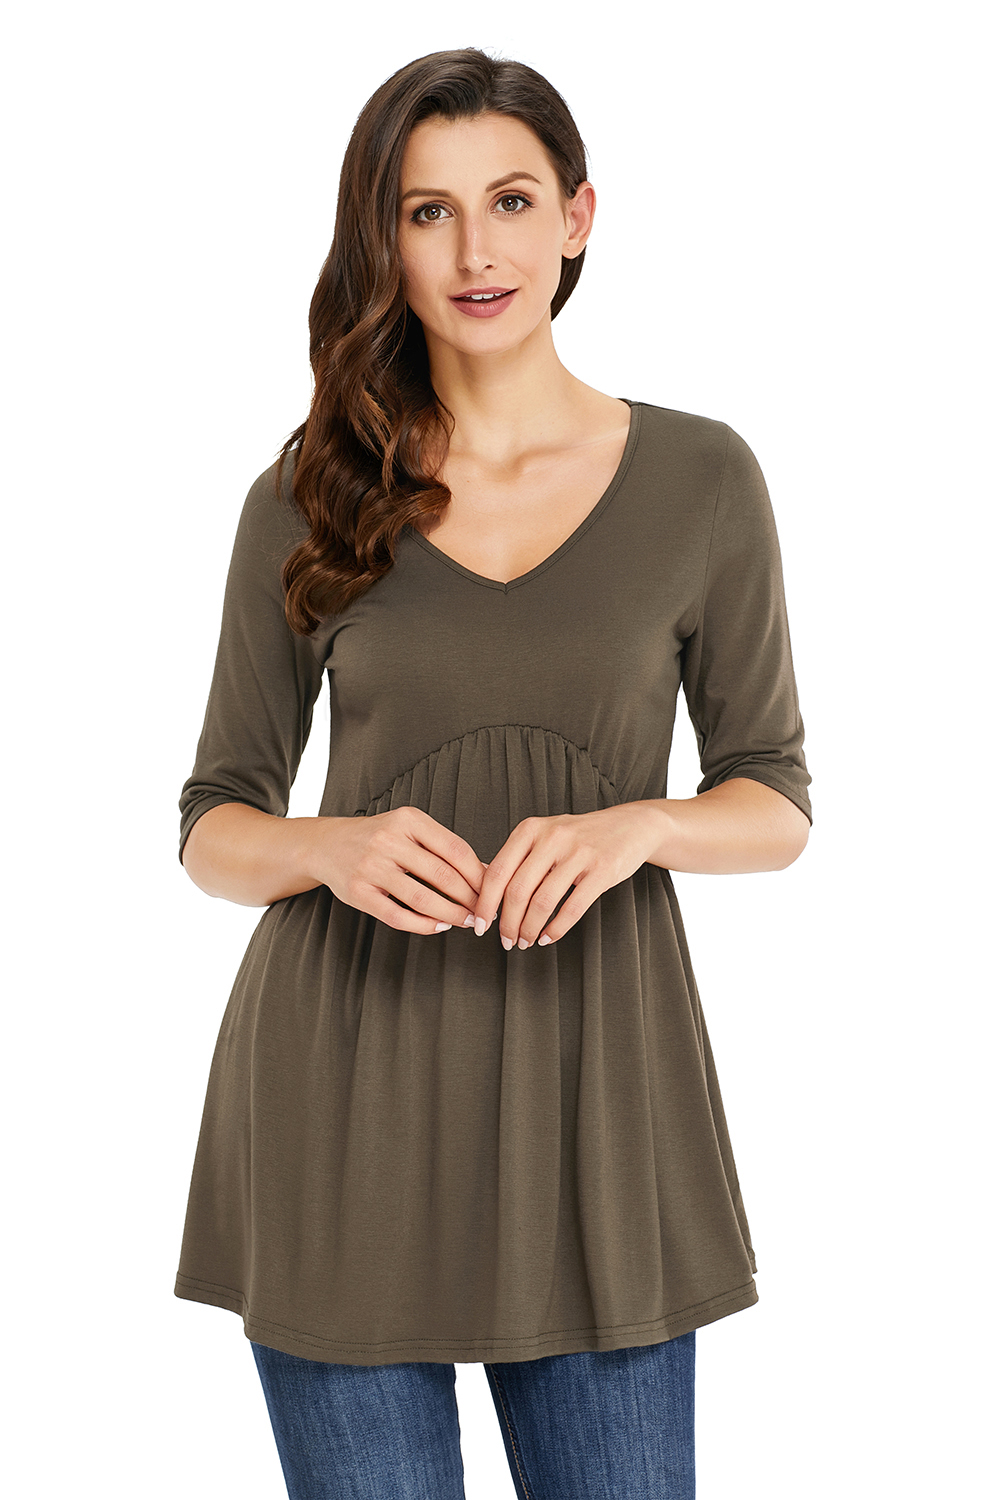 Us215 Zkess Army Green 34 Sleeve Babydoll Tops